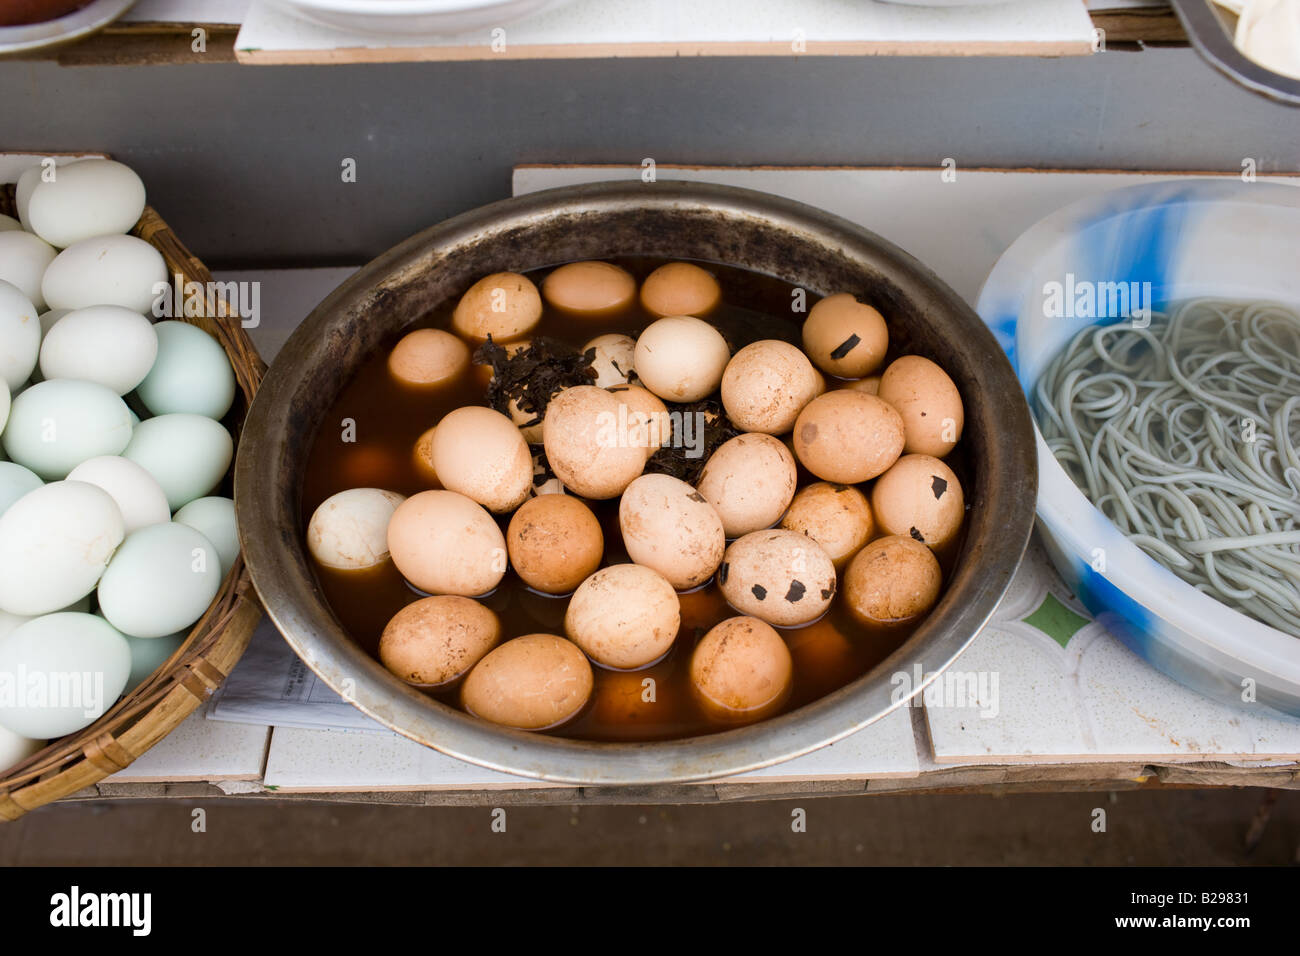 Preserved 1000 year old eggs 6 months old on display at food stall in Fengdu China - Stock Image